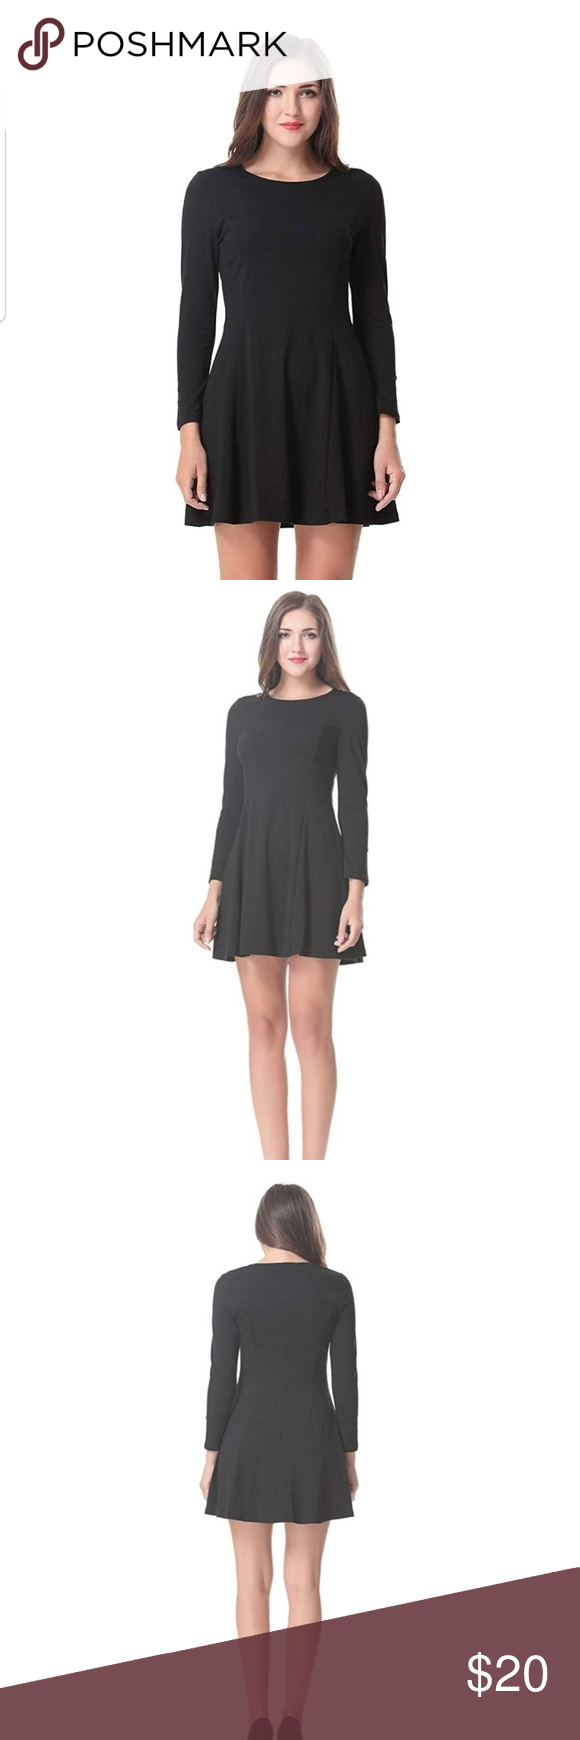 Crew Neck Long Sleeve Fit And Flare Dress Casual Dress Outfits Flare Dress Fit And Flare Dress [ 1740 x 580 Pixel ]